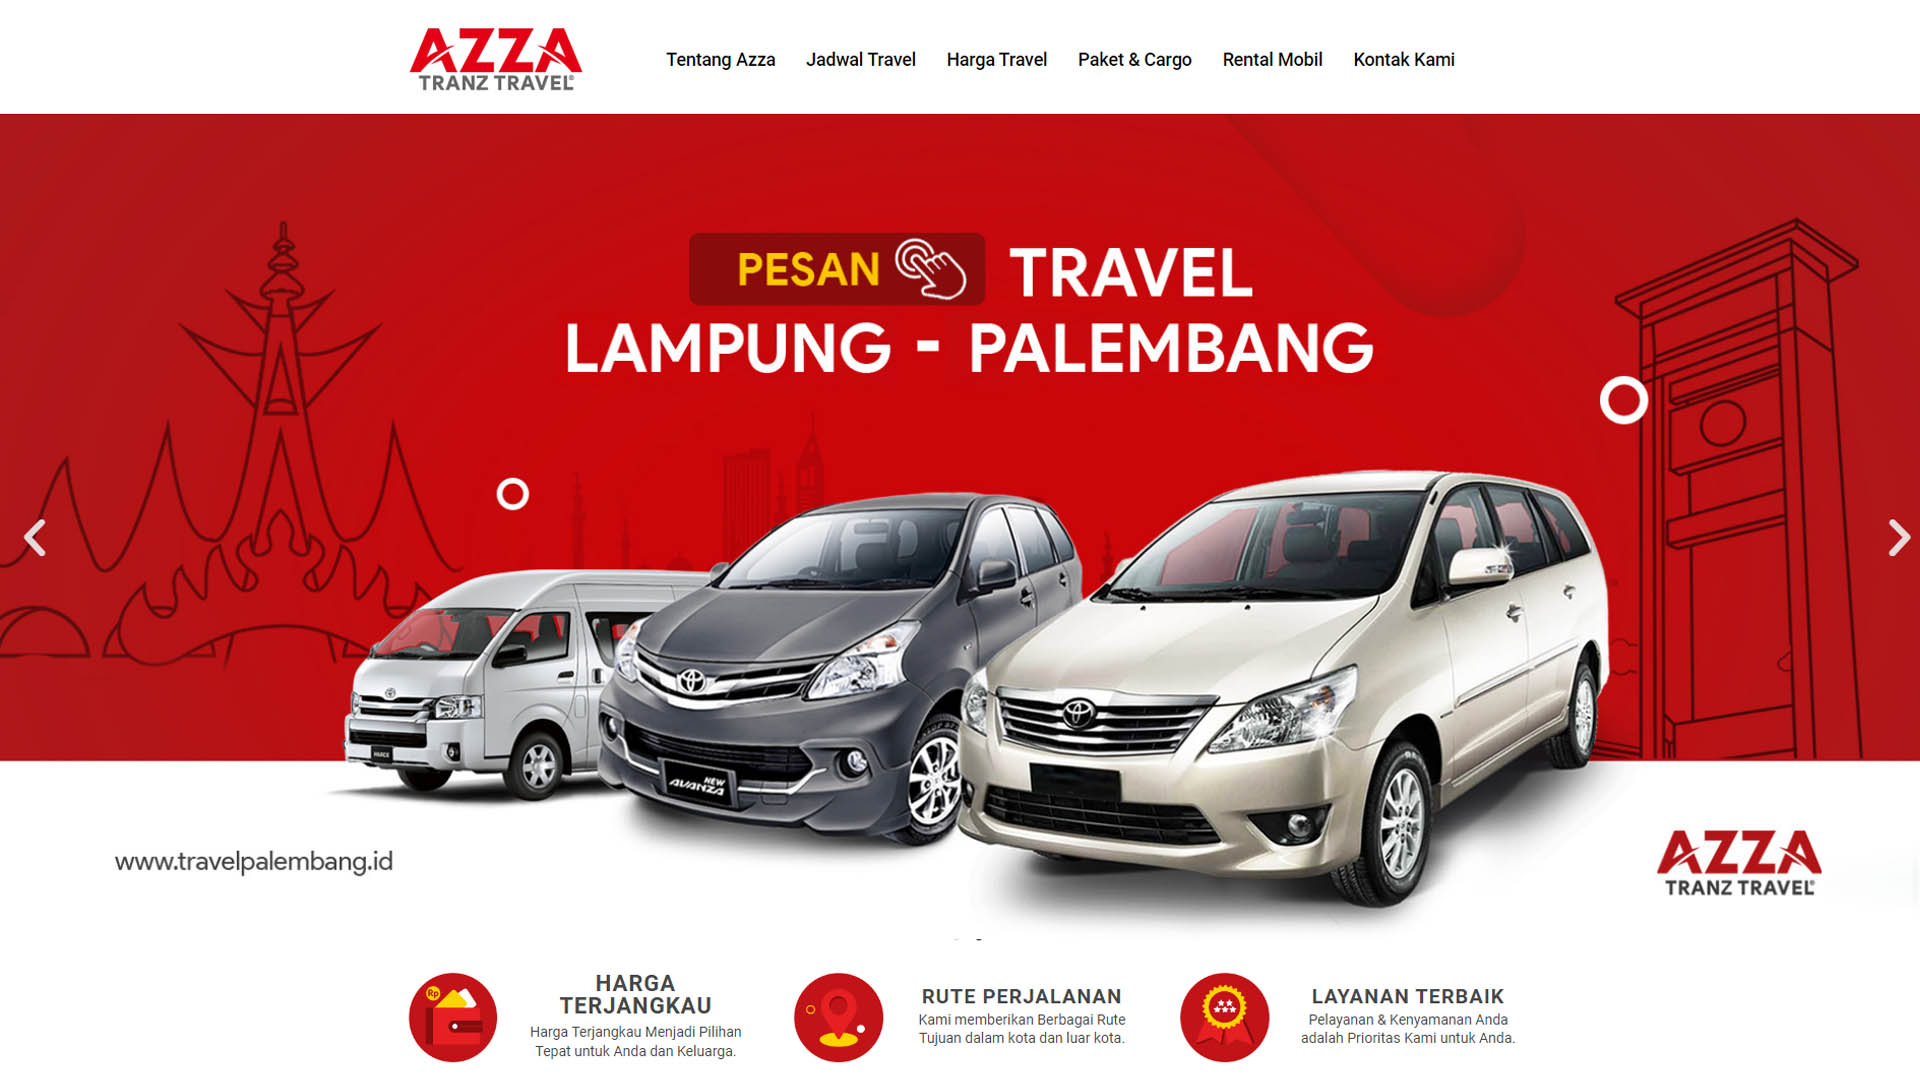 Jasa Pembuatan Website Travel Palembang - Azza Trans Travel